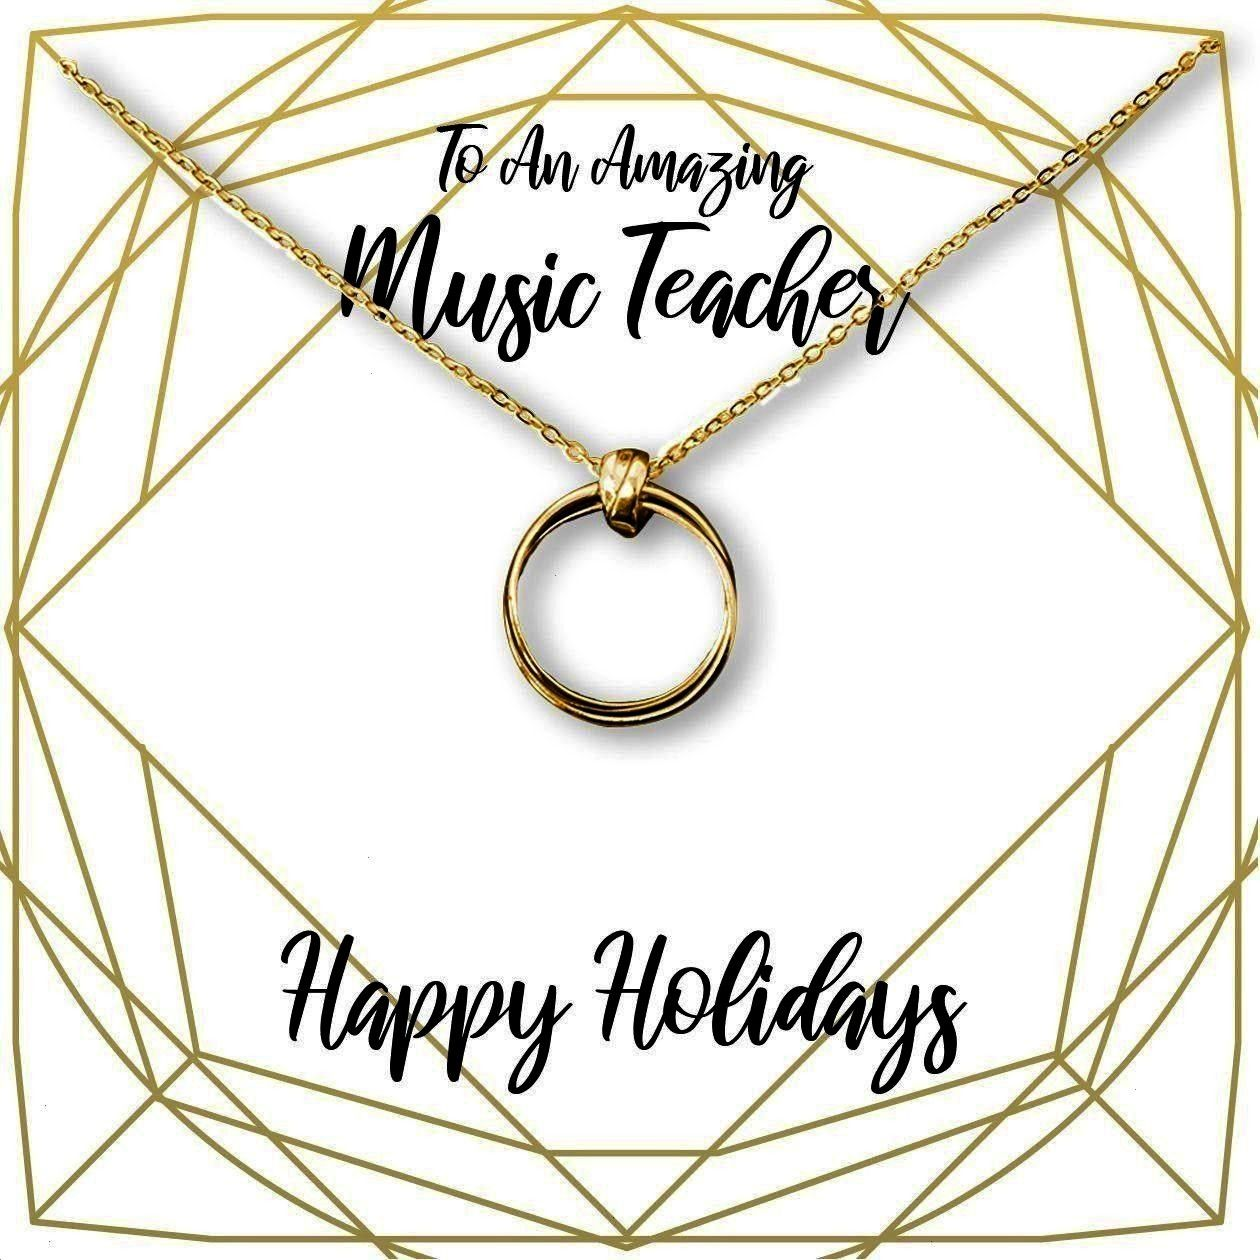 Music Teacher Necklace: Piano Teacher, Clarinet Teacher, Violin Teacher, Flute Teacher, Band Teache